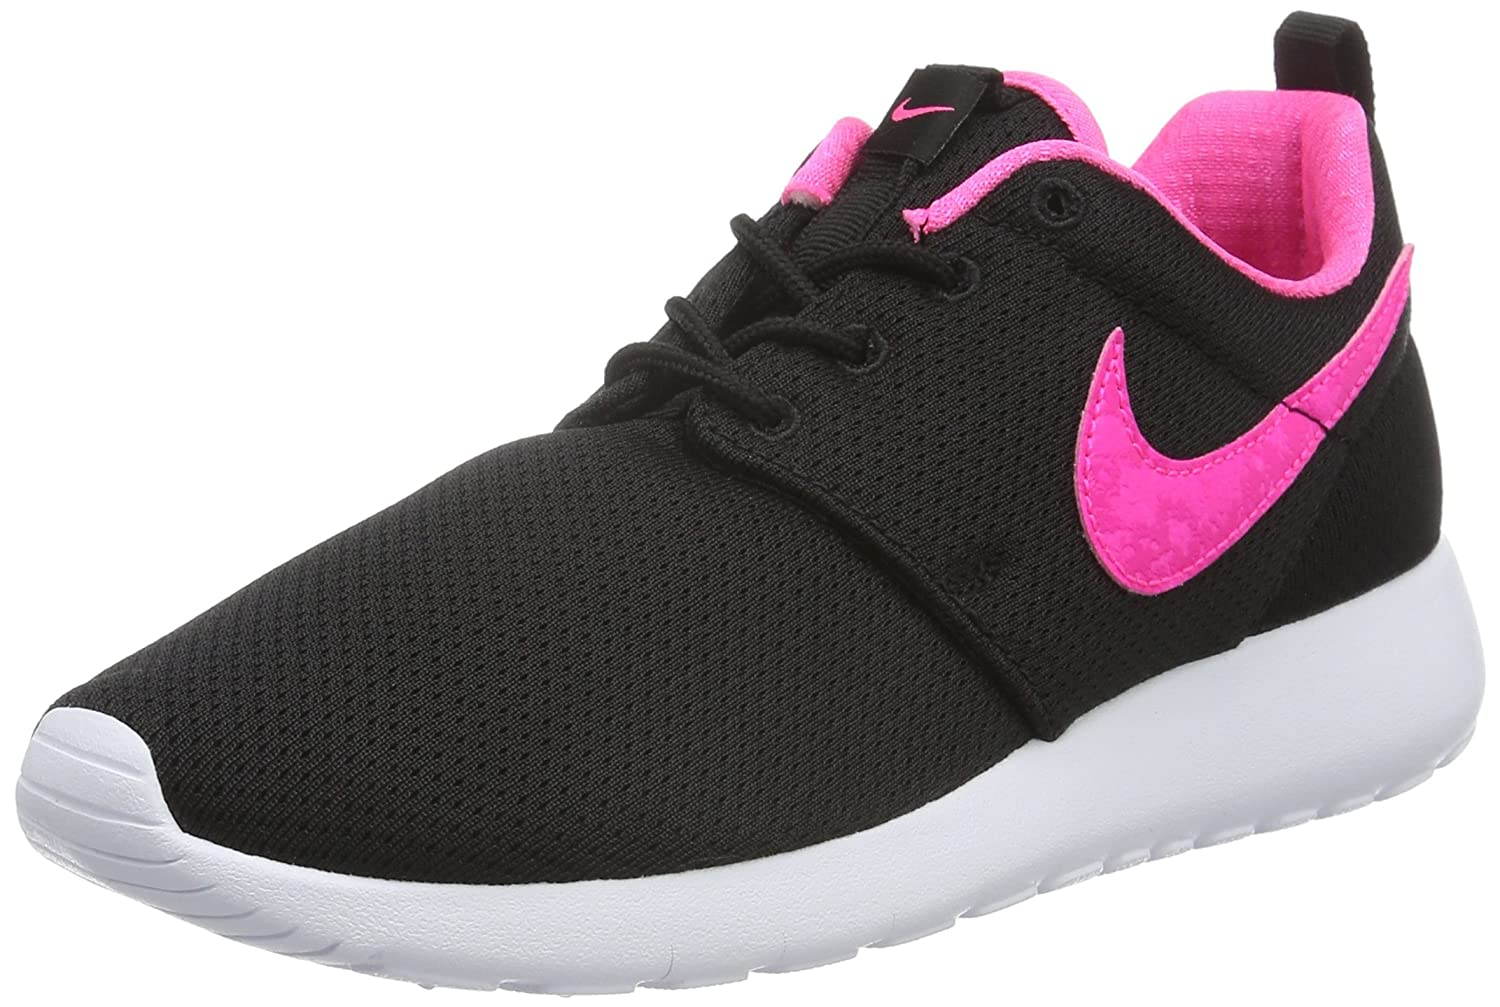 1d633172301e4 Amazon.com | NIKE Roshe One Rosheone GS Sneaker Black/Pink/White | Sneakers